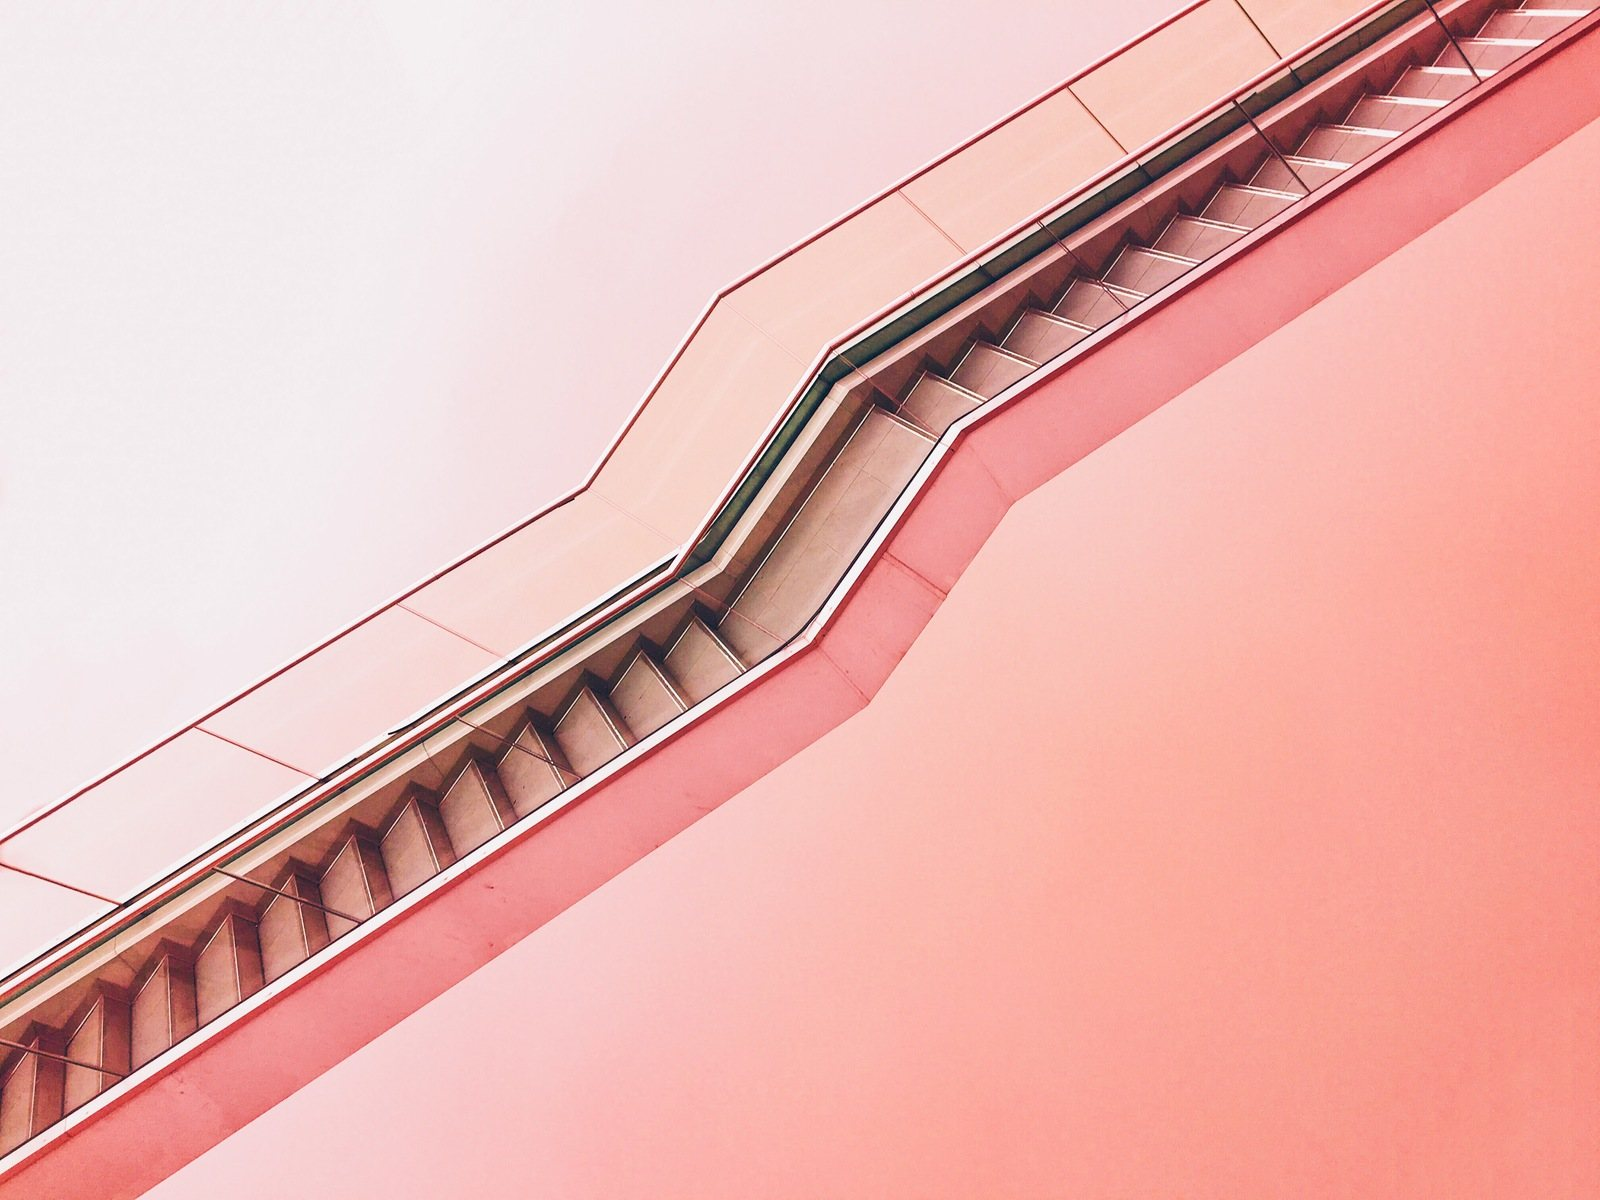 White Staircase with Pink Background by Max-Ostrozhinskiy